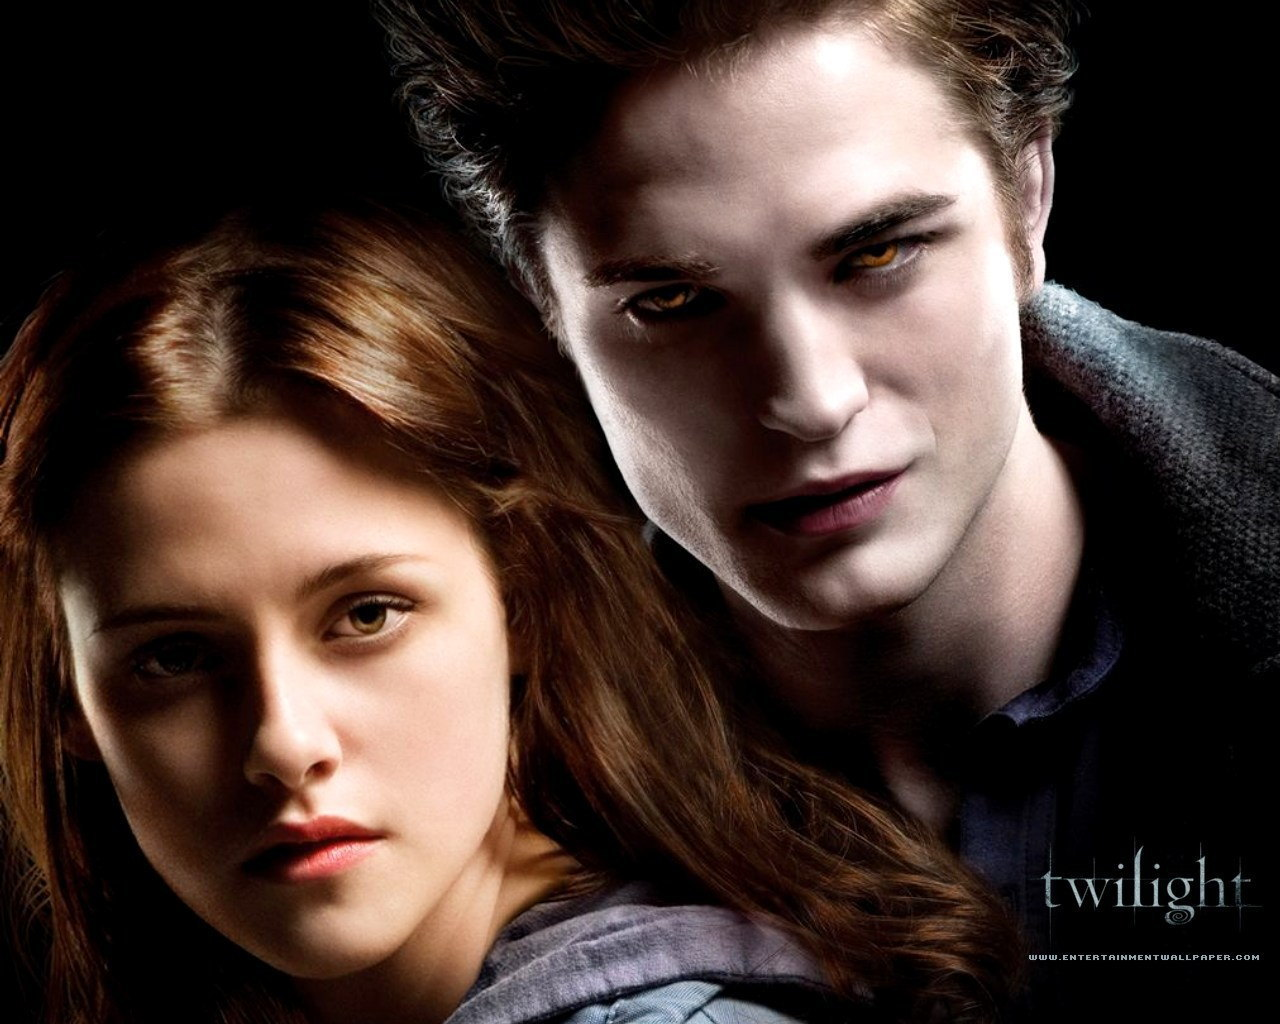 twilight the movie Free films org based on third-party critic ratings & reviewed for your security and privacy, we are not using personal info, like your name, email address, password, or phone number.